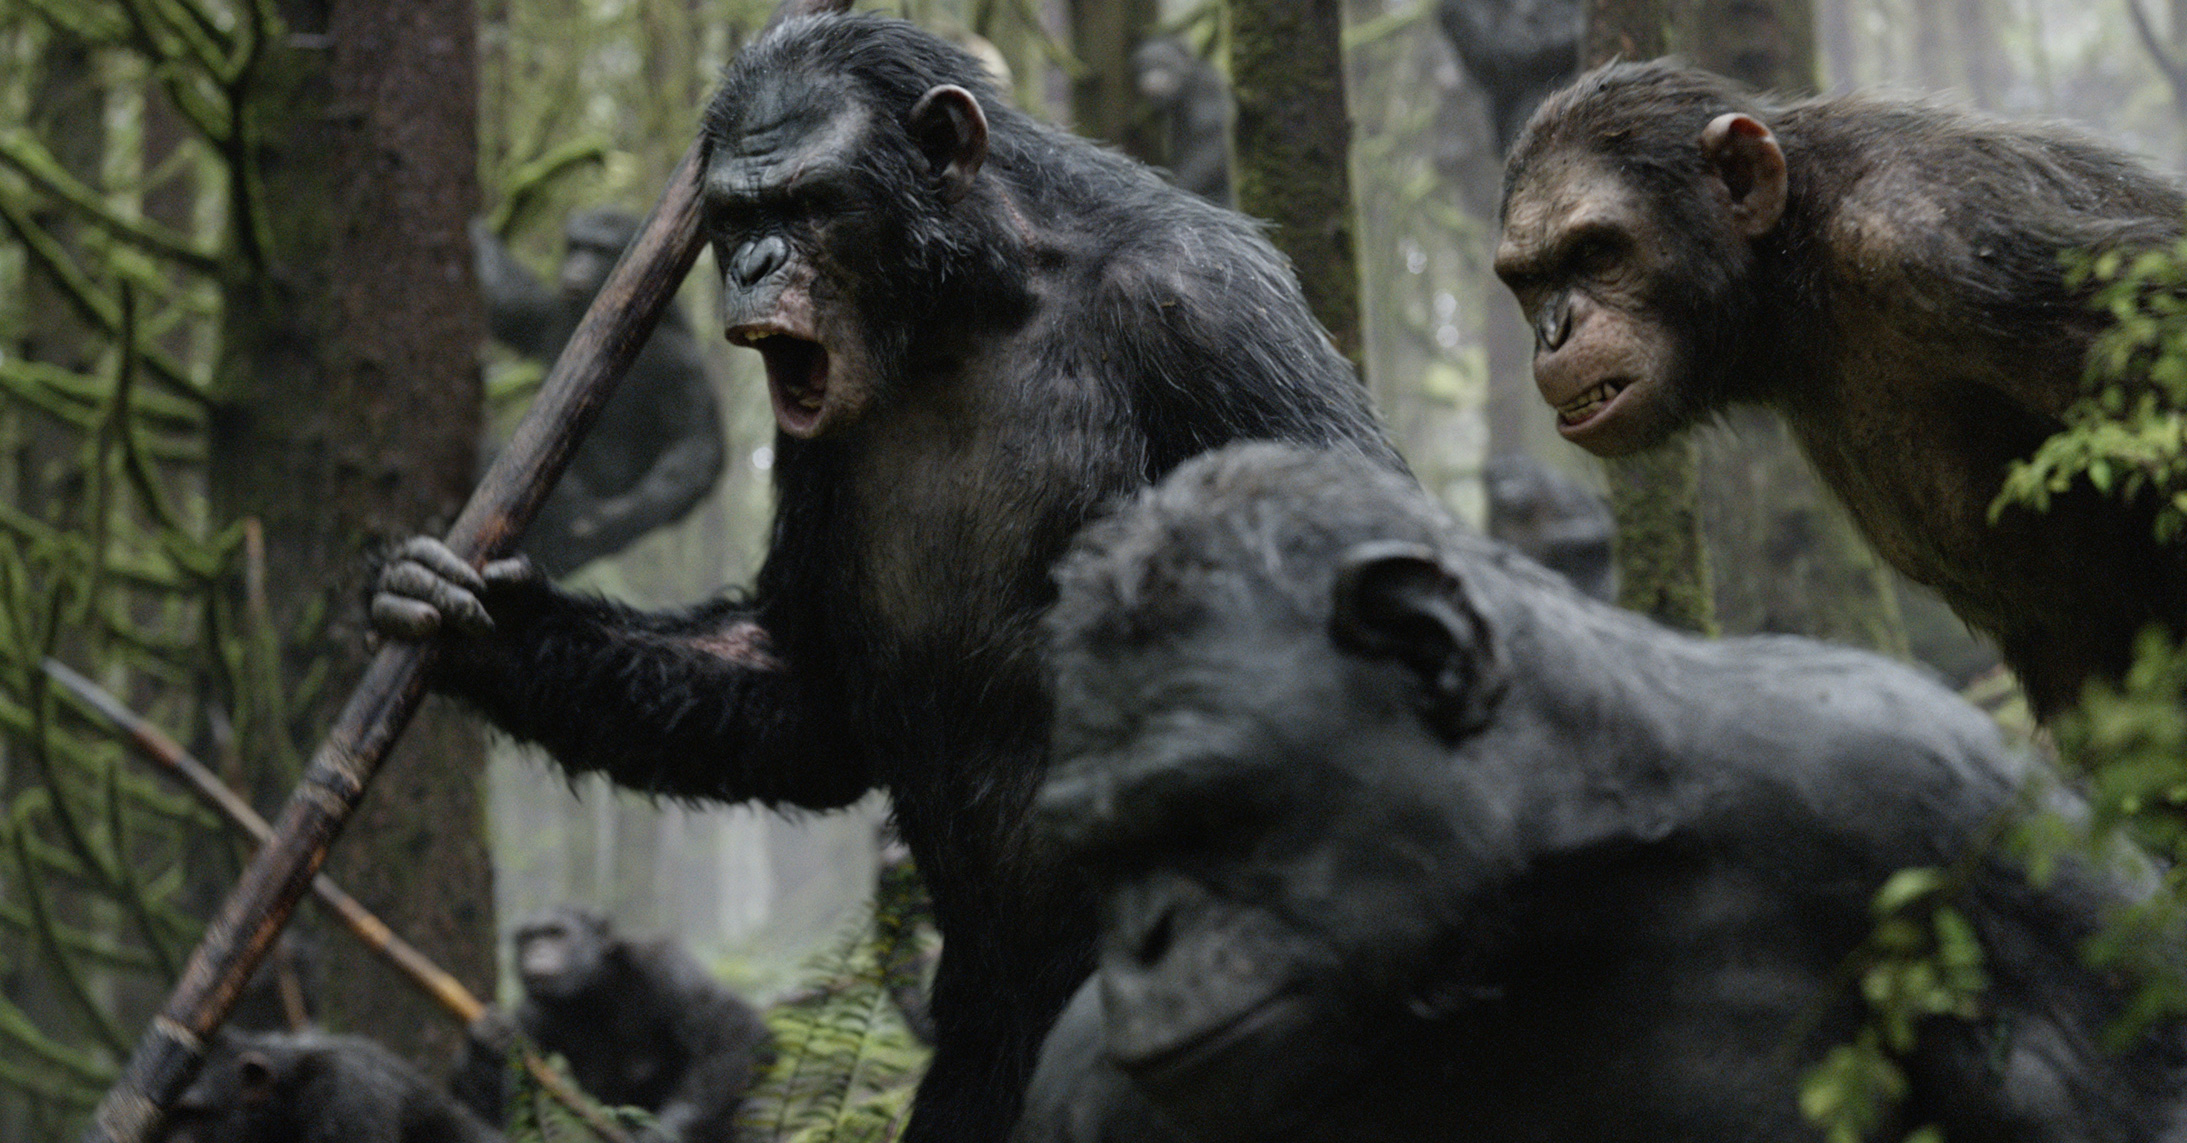 Feature Interview: Creative Director Gino Acevedo (Dawn of the Planet of the Apes)